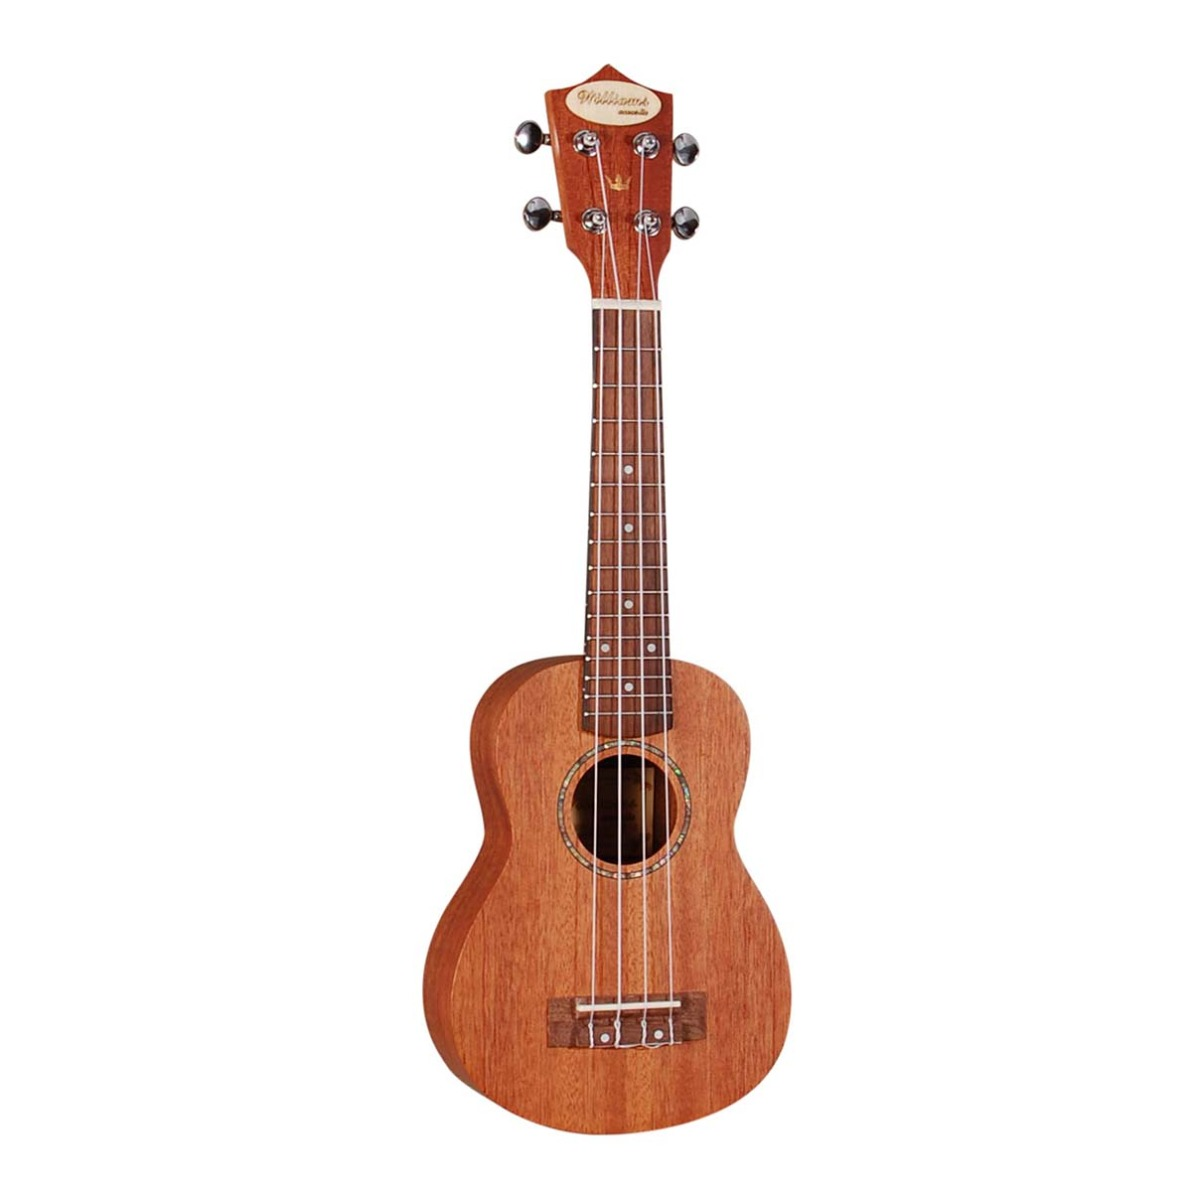 Williams Acoustic EU100S v2 sopran ukulele